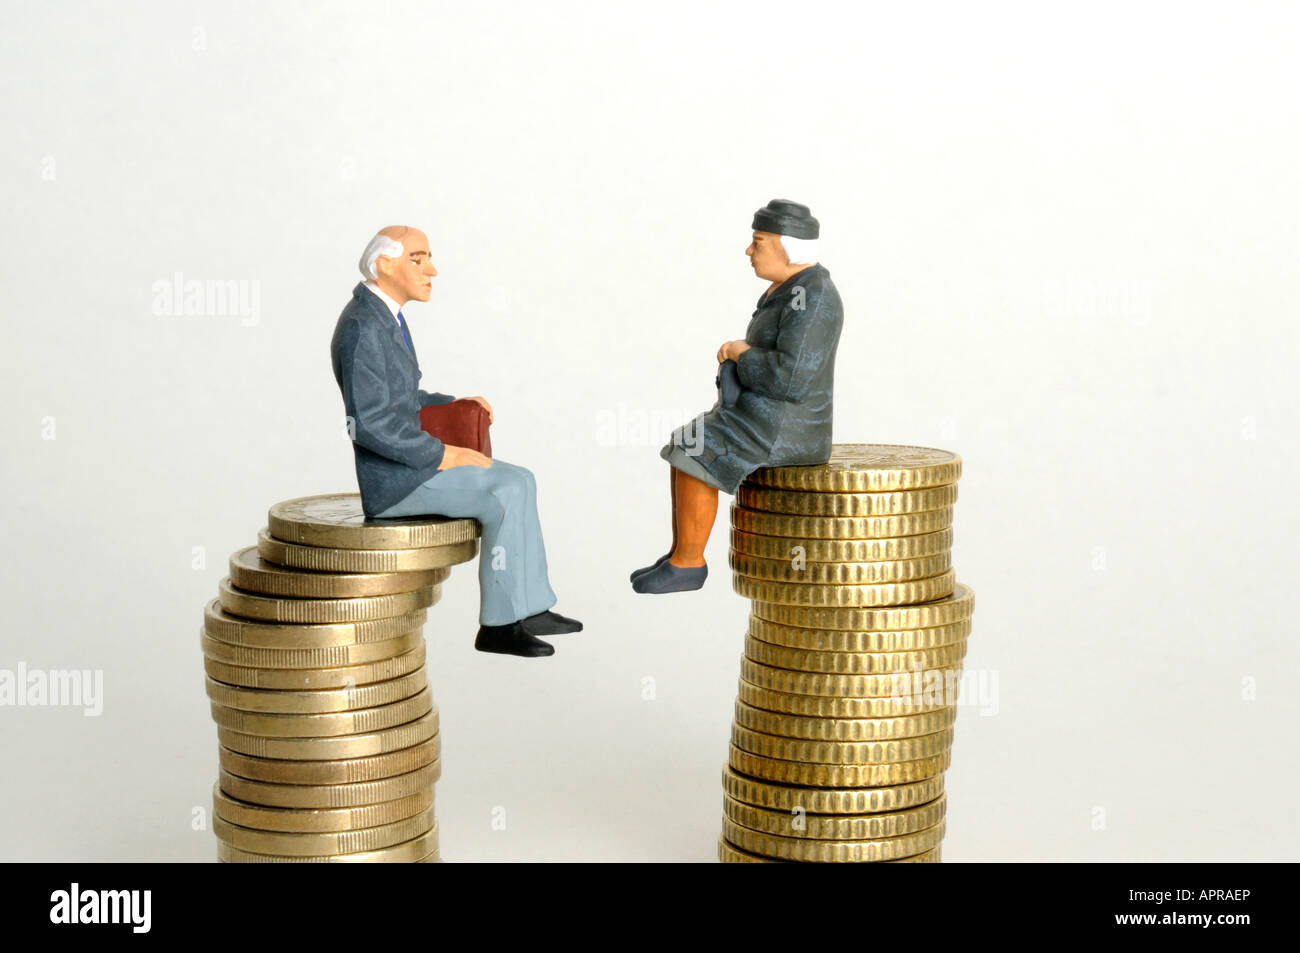 Pensions / savings concept - Stock Image